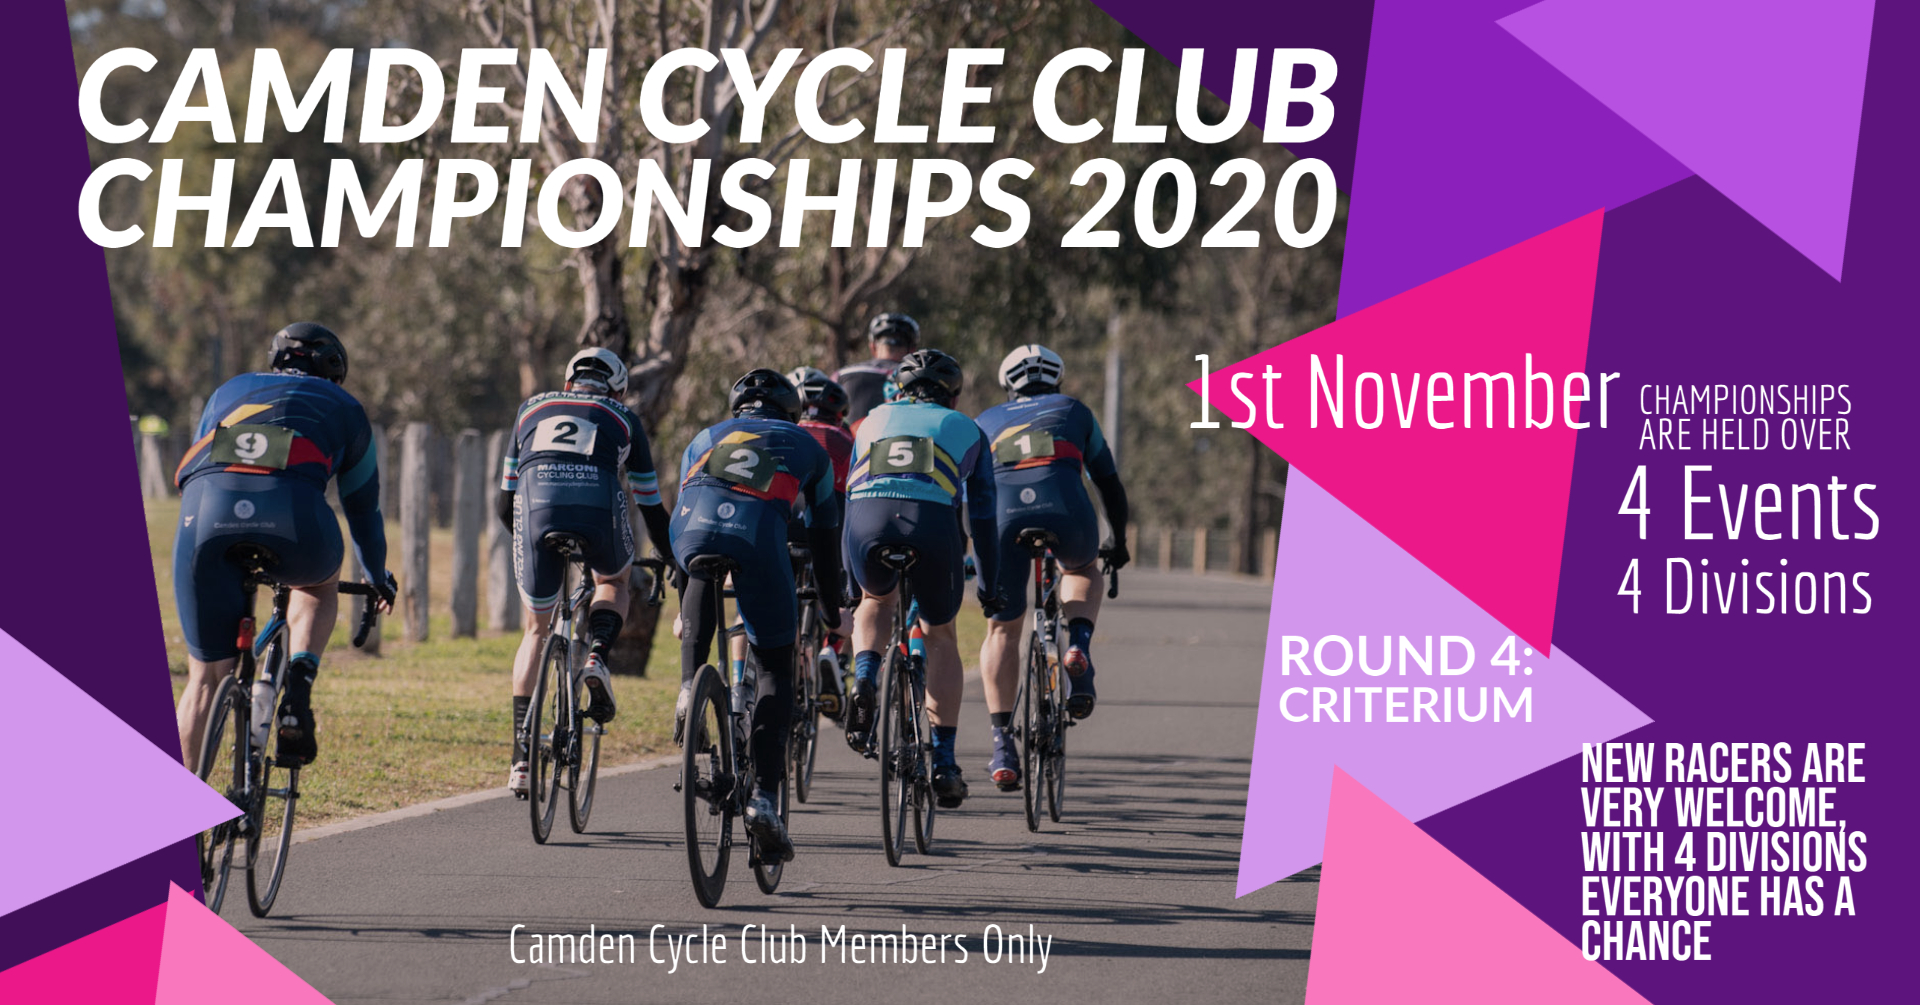 Camden Cycle Club Championships 2020 Criterium